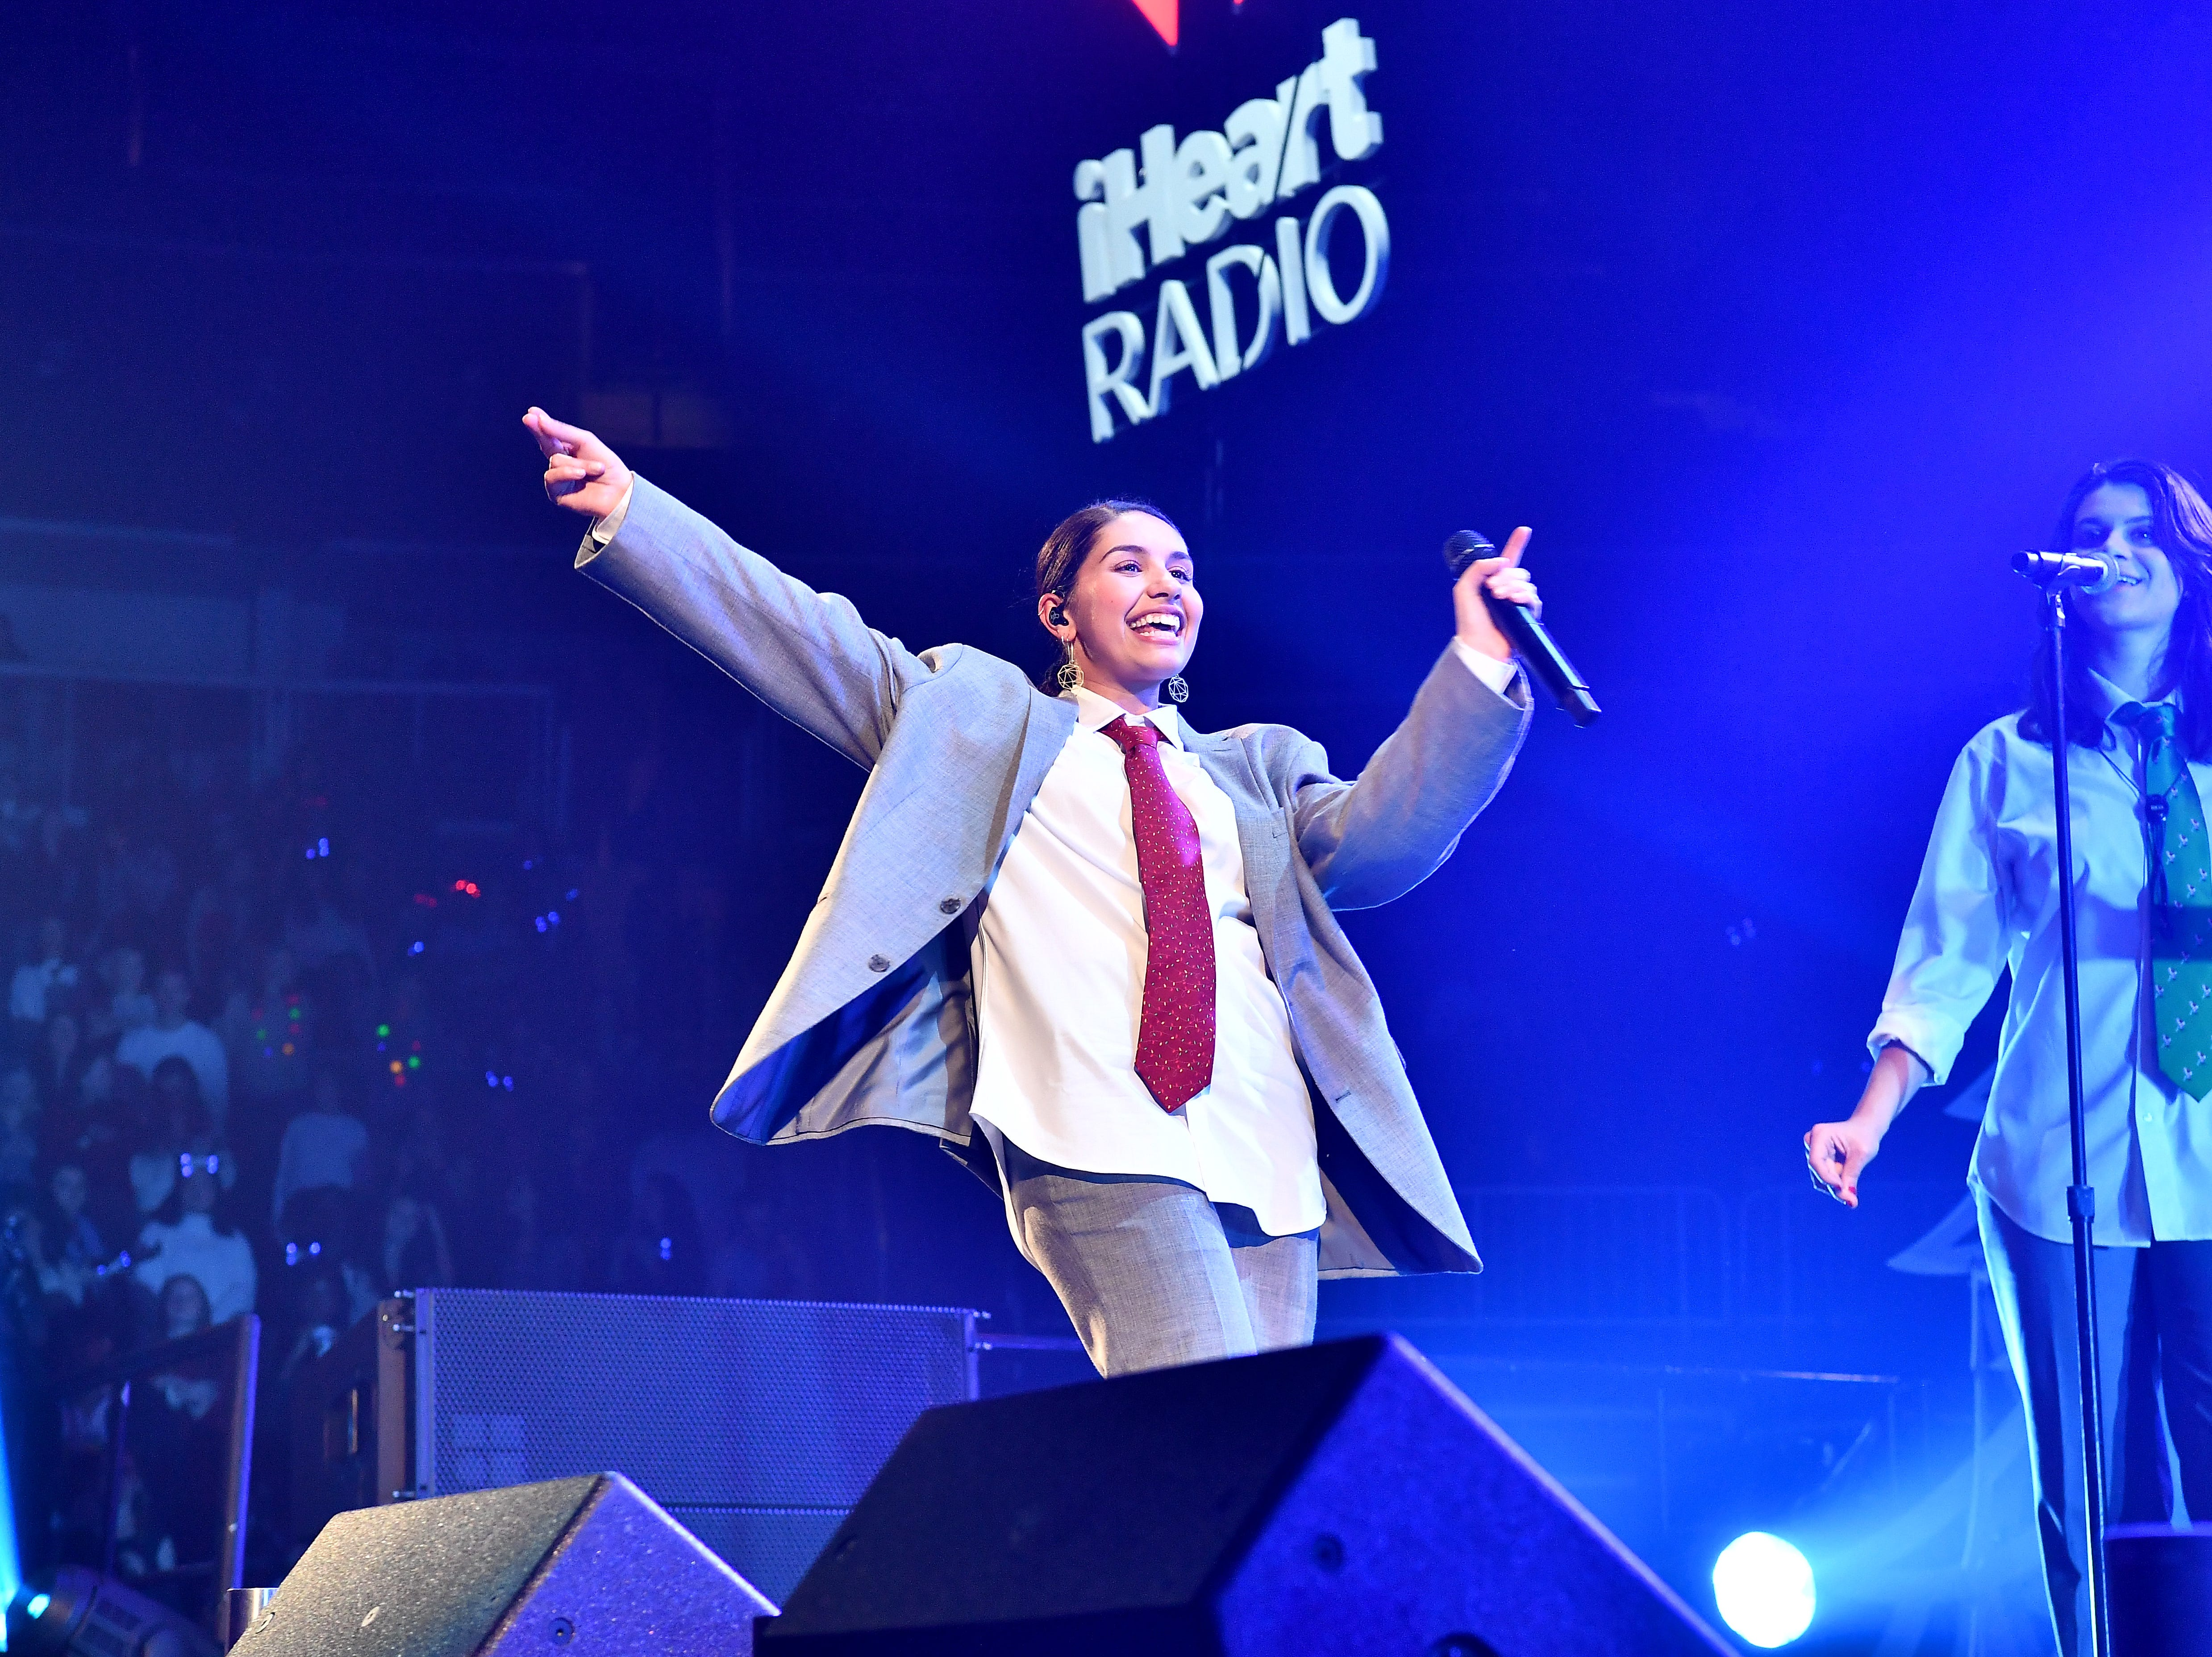 ATLANTA, GA - DECEMBER 14:  Recording artist Alessia Cara performs onstage during Power 96.1's Atlanta Jingle Ball  on December 14, 2018 in Atlanta, Georgia.  (Photo by Paras Griffin/Getty Images for iHeartMedia) ORG XMIT: 775251046 ORIG FILE ID: 1073353666